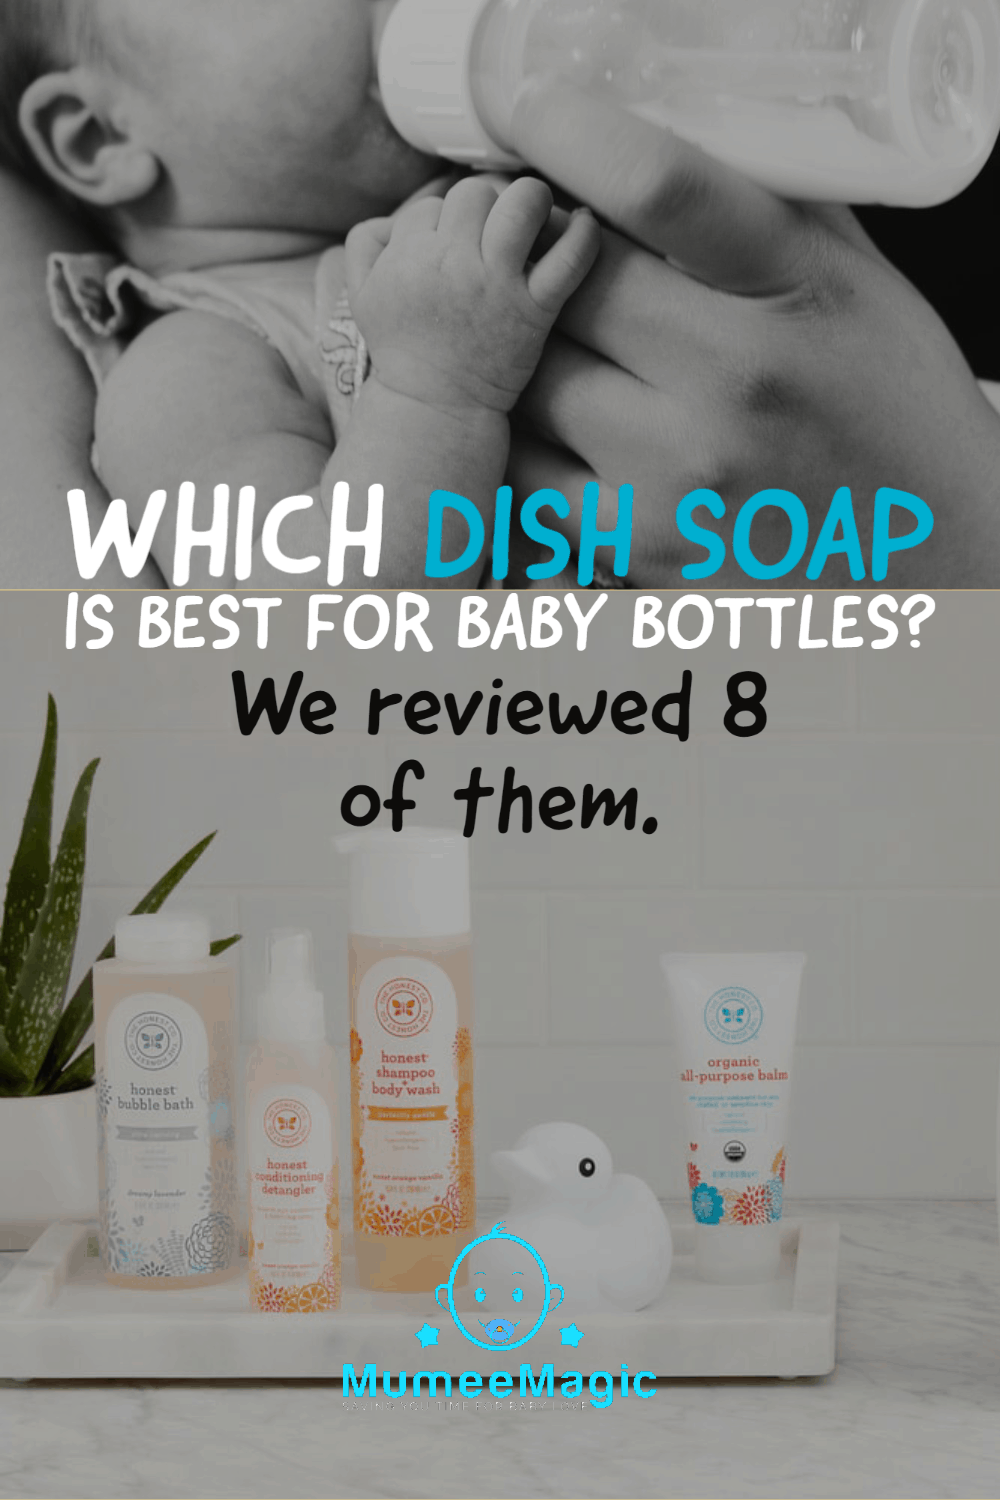 Dish soap for baby bottles